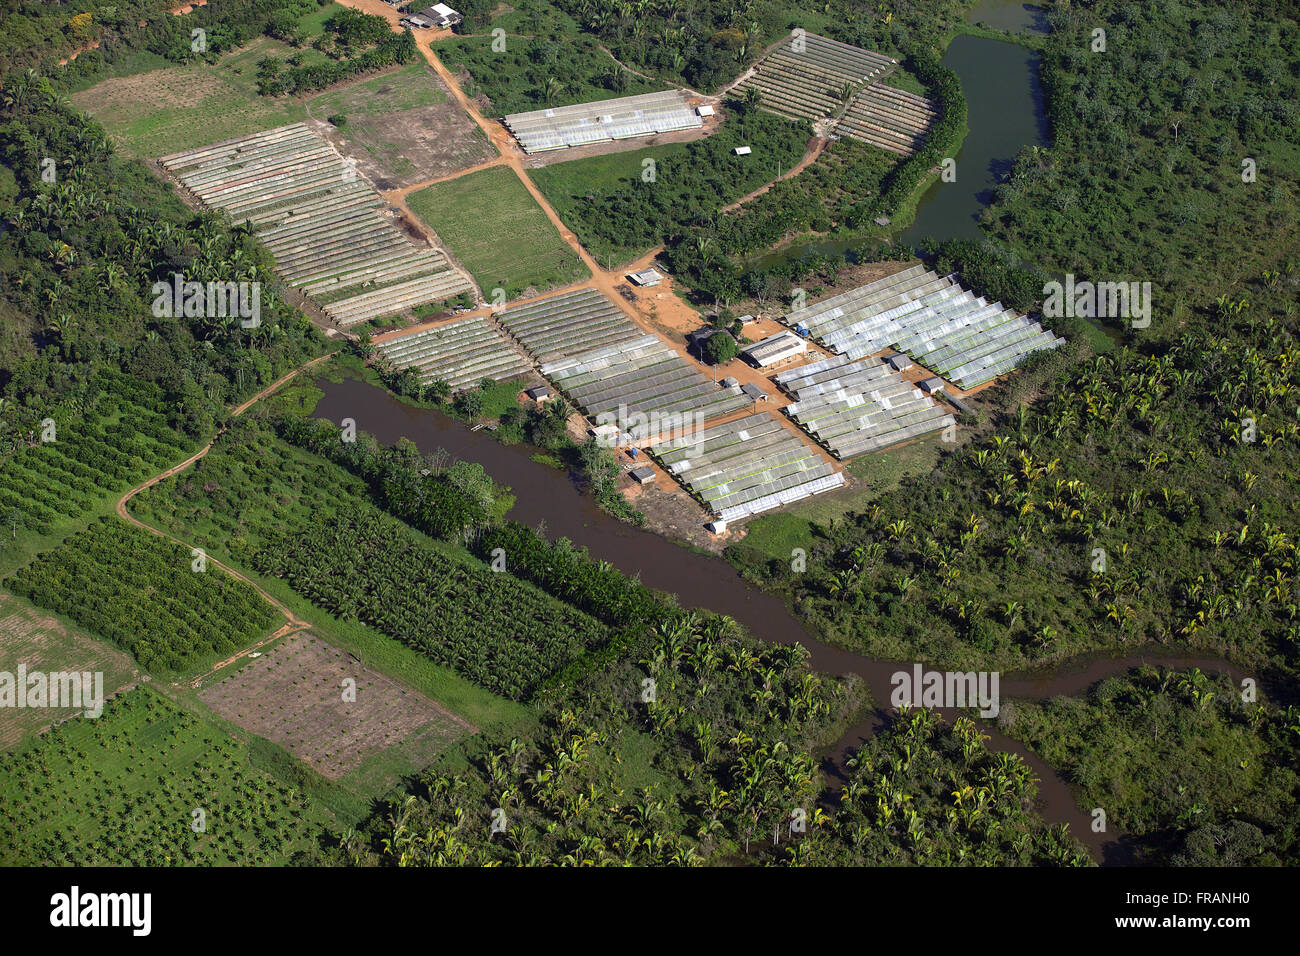 Aerial view of the horticultural production in the outskirts of town Stock Photo